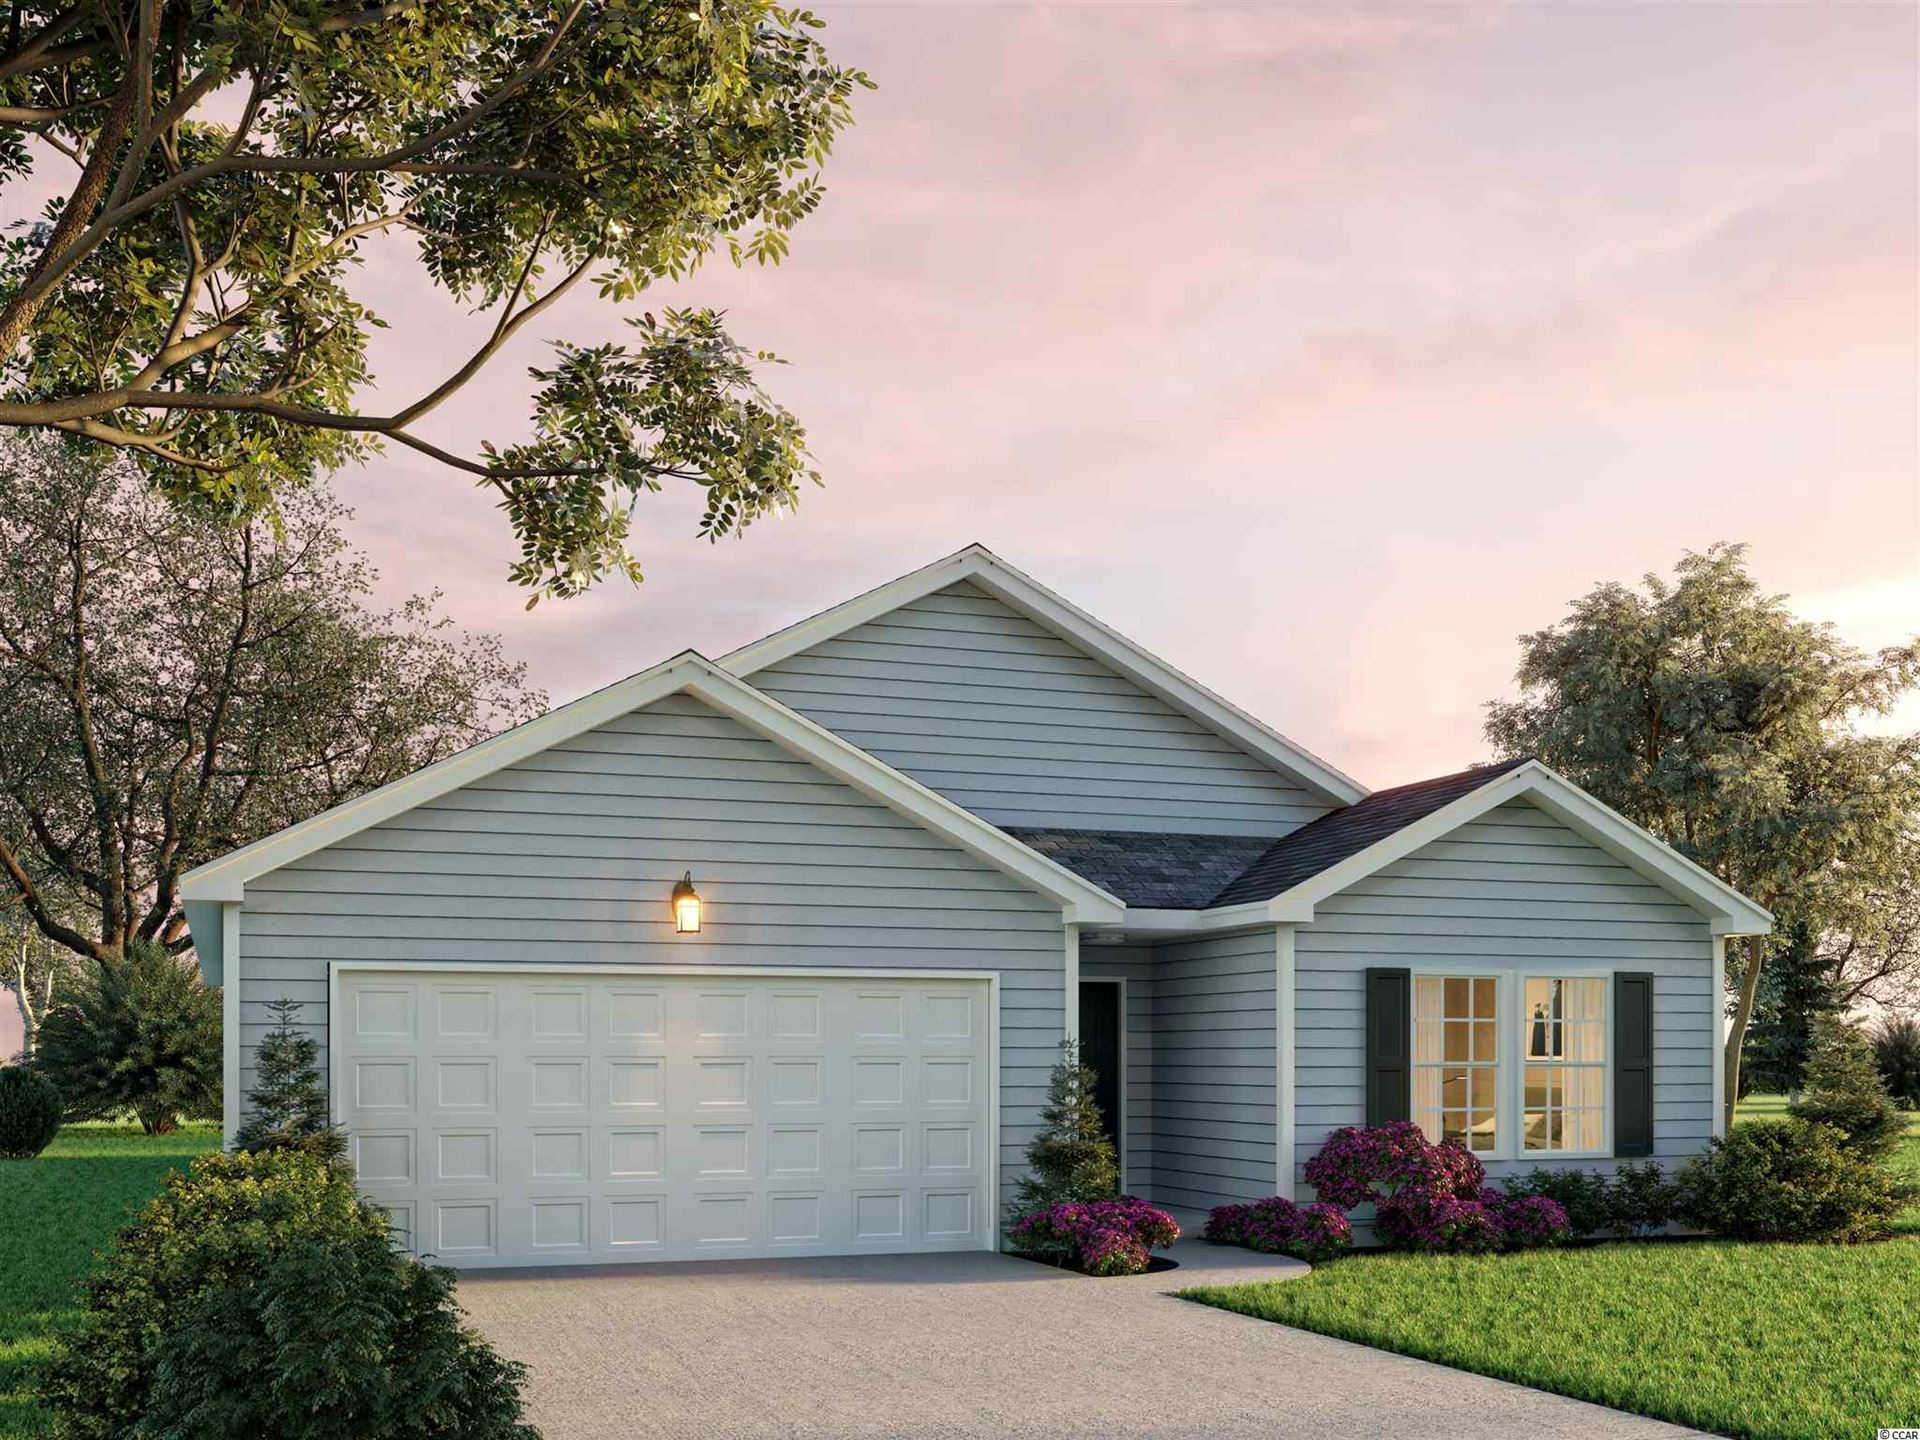 211 Clearwater Dr., Pawleys Island, SC 29585 - MLS#: 2017661